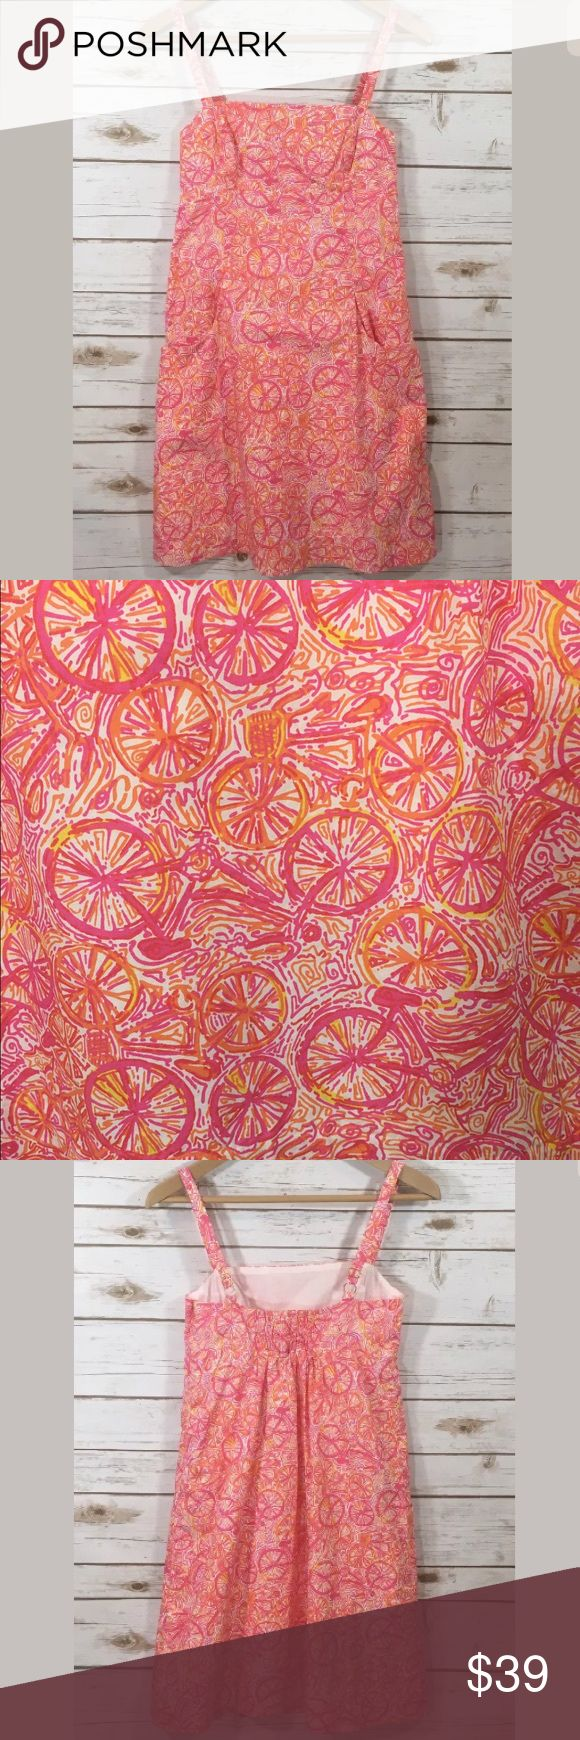 "Lilly Pulitzer Ten Speed Dress Lilly Pulitzer ""Ten Speed"" Lola sundress. Pink, orange, and white bicycle/bike print pattern. Side zip closure. Has 2 pockets on front. 100% cotton. Lined.  Labeled a size 2, women's. All brands are sized differently. Please review measurements to ensure a proper fit.   Bust: 28"" (has elastic in back so can stretch a little bit -- about 2-3 more inches) Waist: 27"" Hip: 36"" Length: 33""  Excellent preowned condition, no flaws to note. Was recently dry cleaned…"